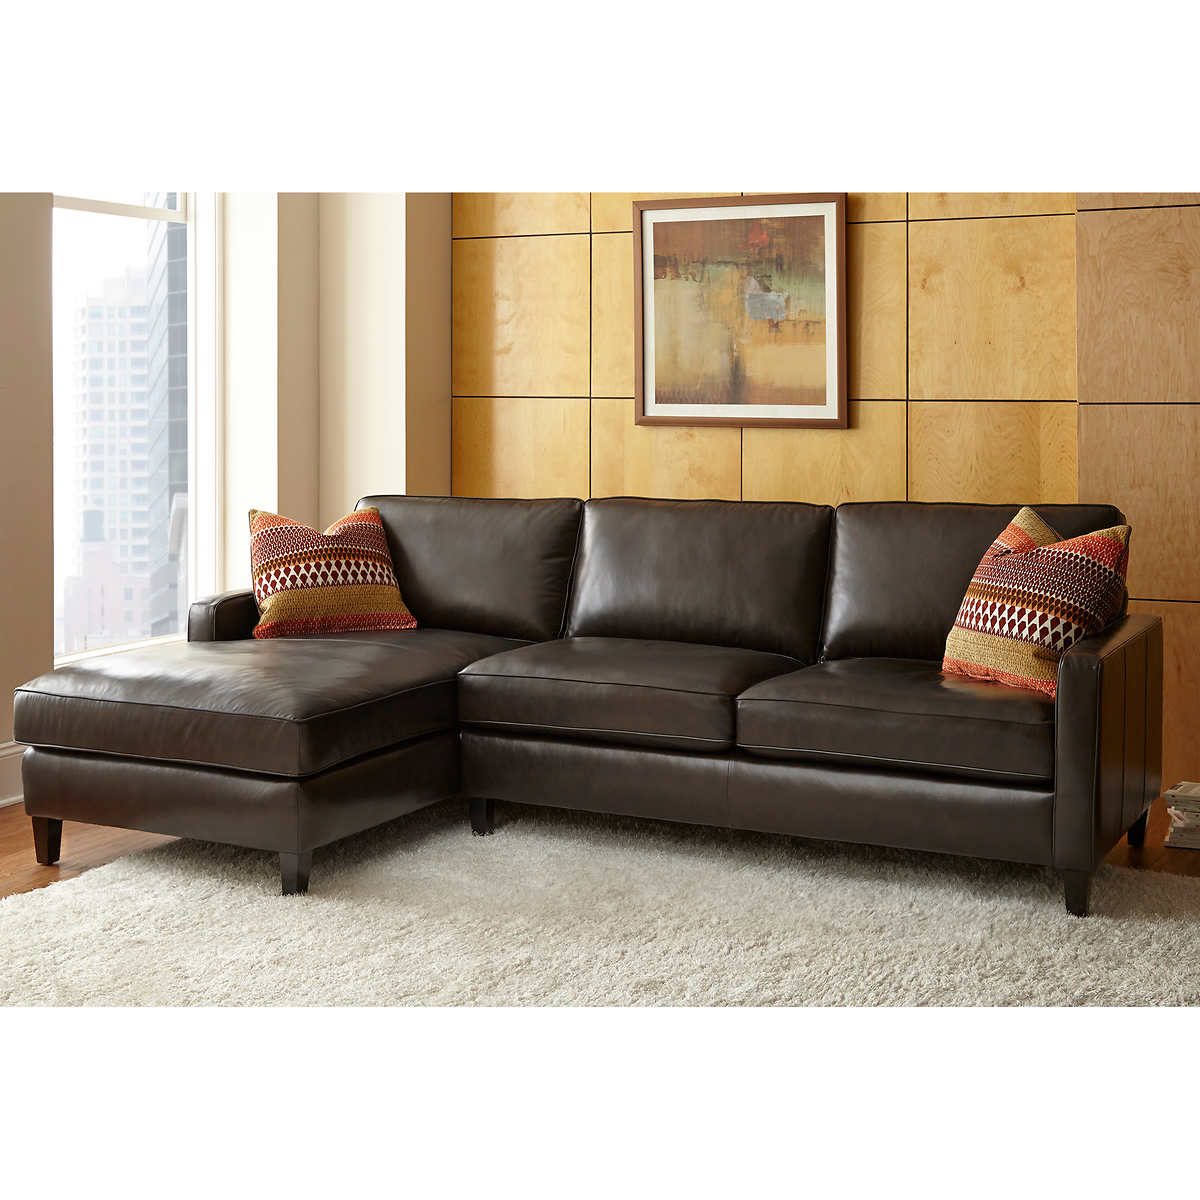 Best Leather Sectional For The Money